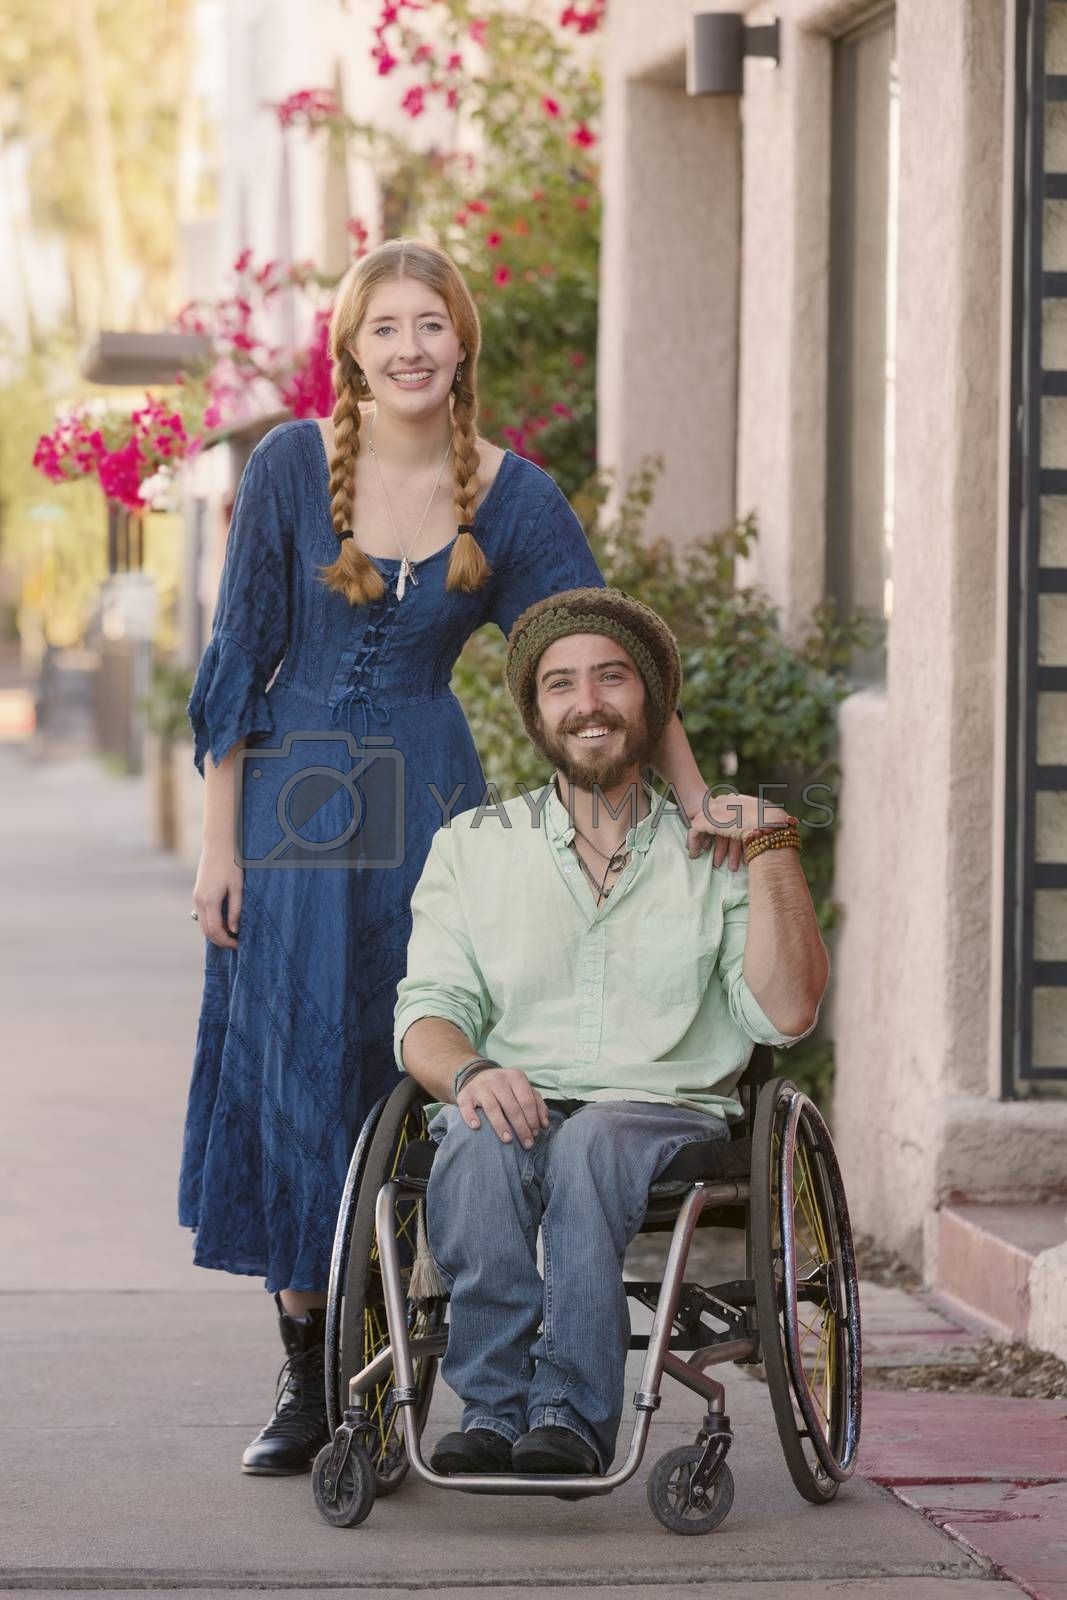 Woman with male friend in wheelchair on sidewalk